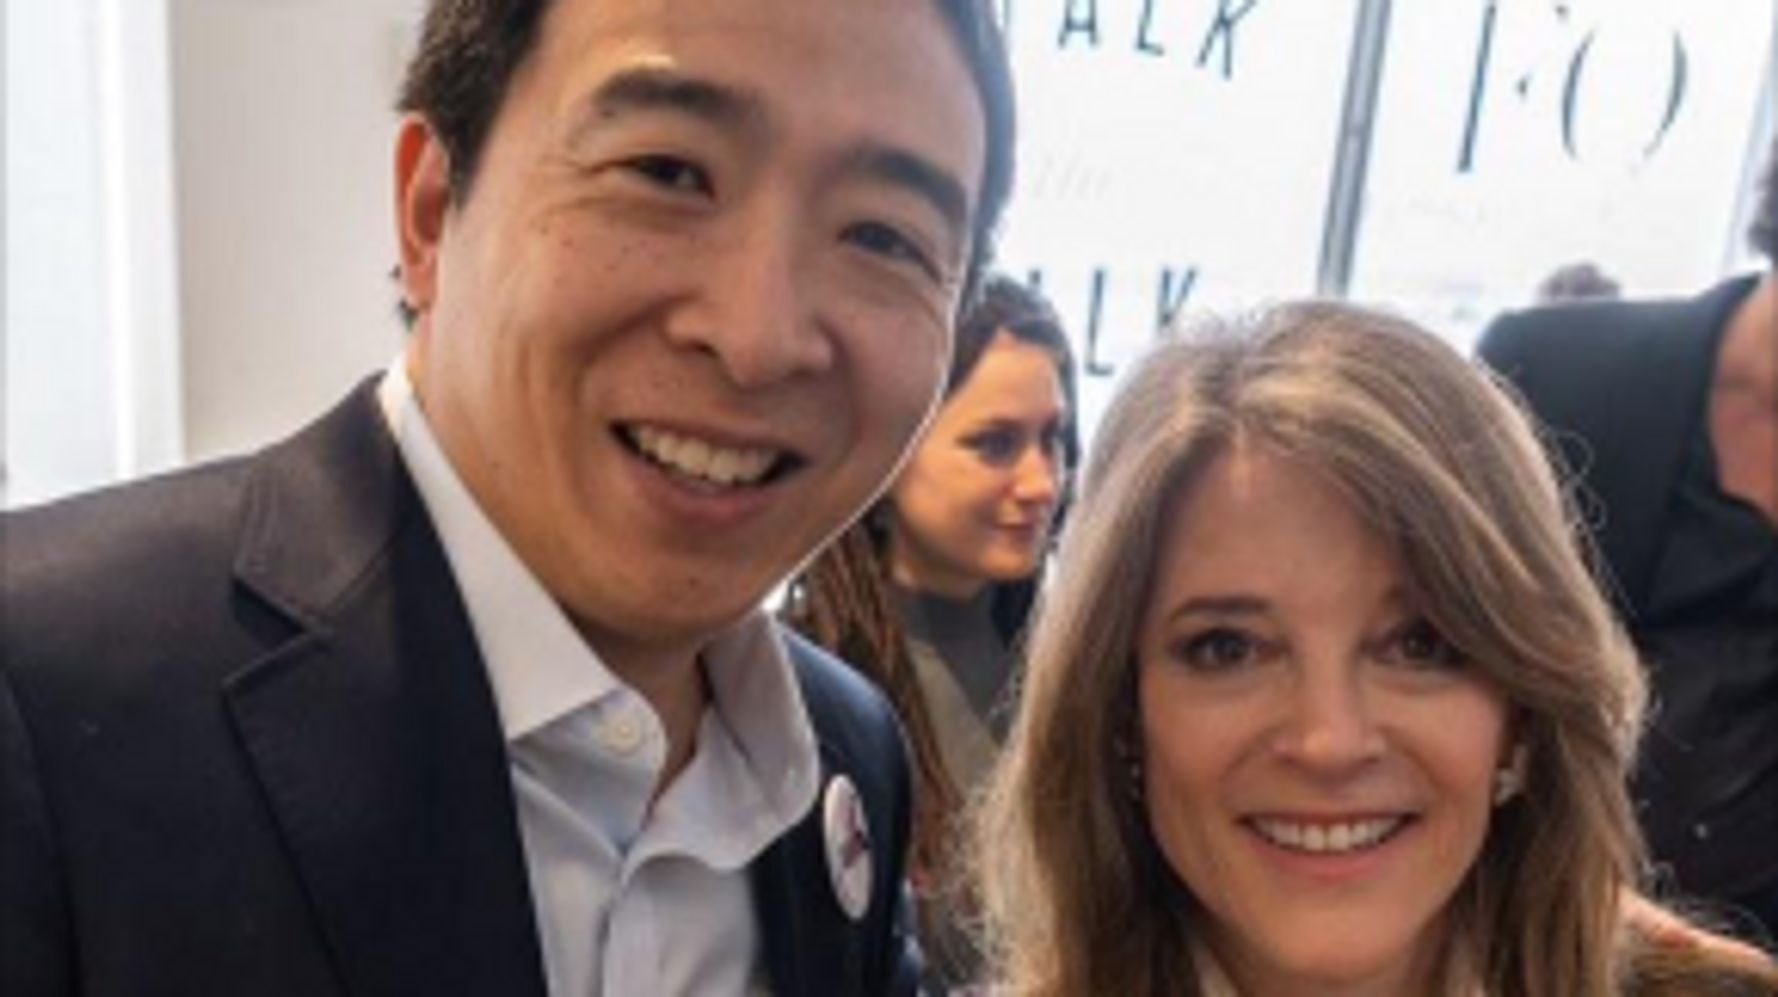 Williamson To Support Yang In Iowa Caucuses: He's 'Deep In Substance'